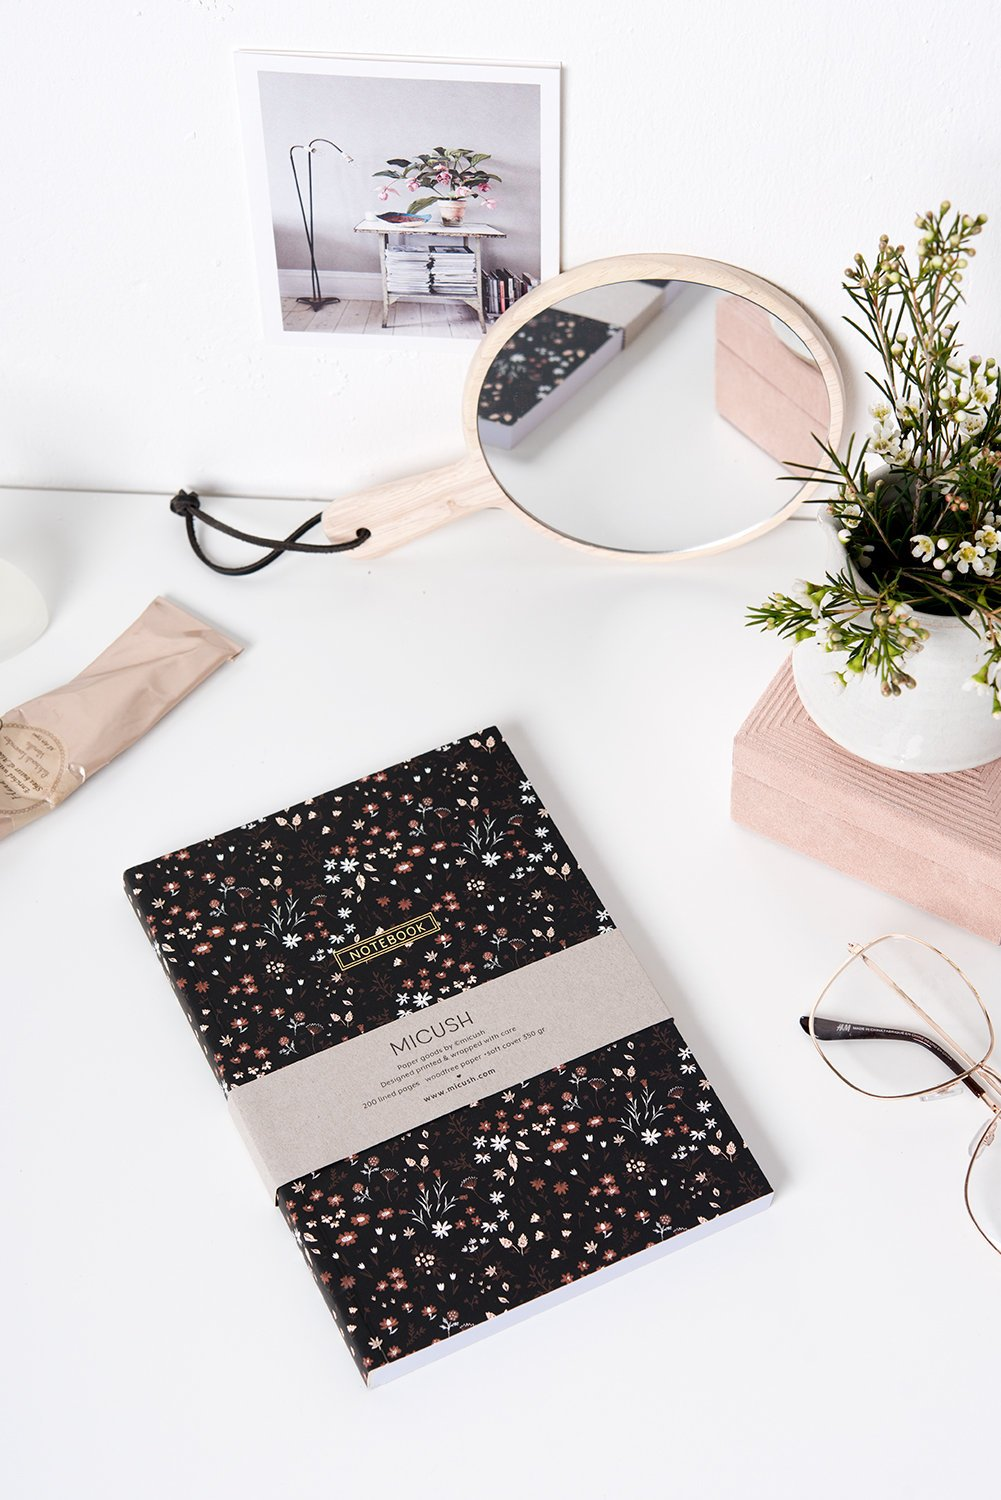 Etsy gift guide for the stationery obsessed